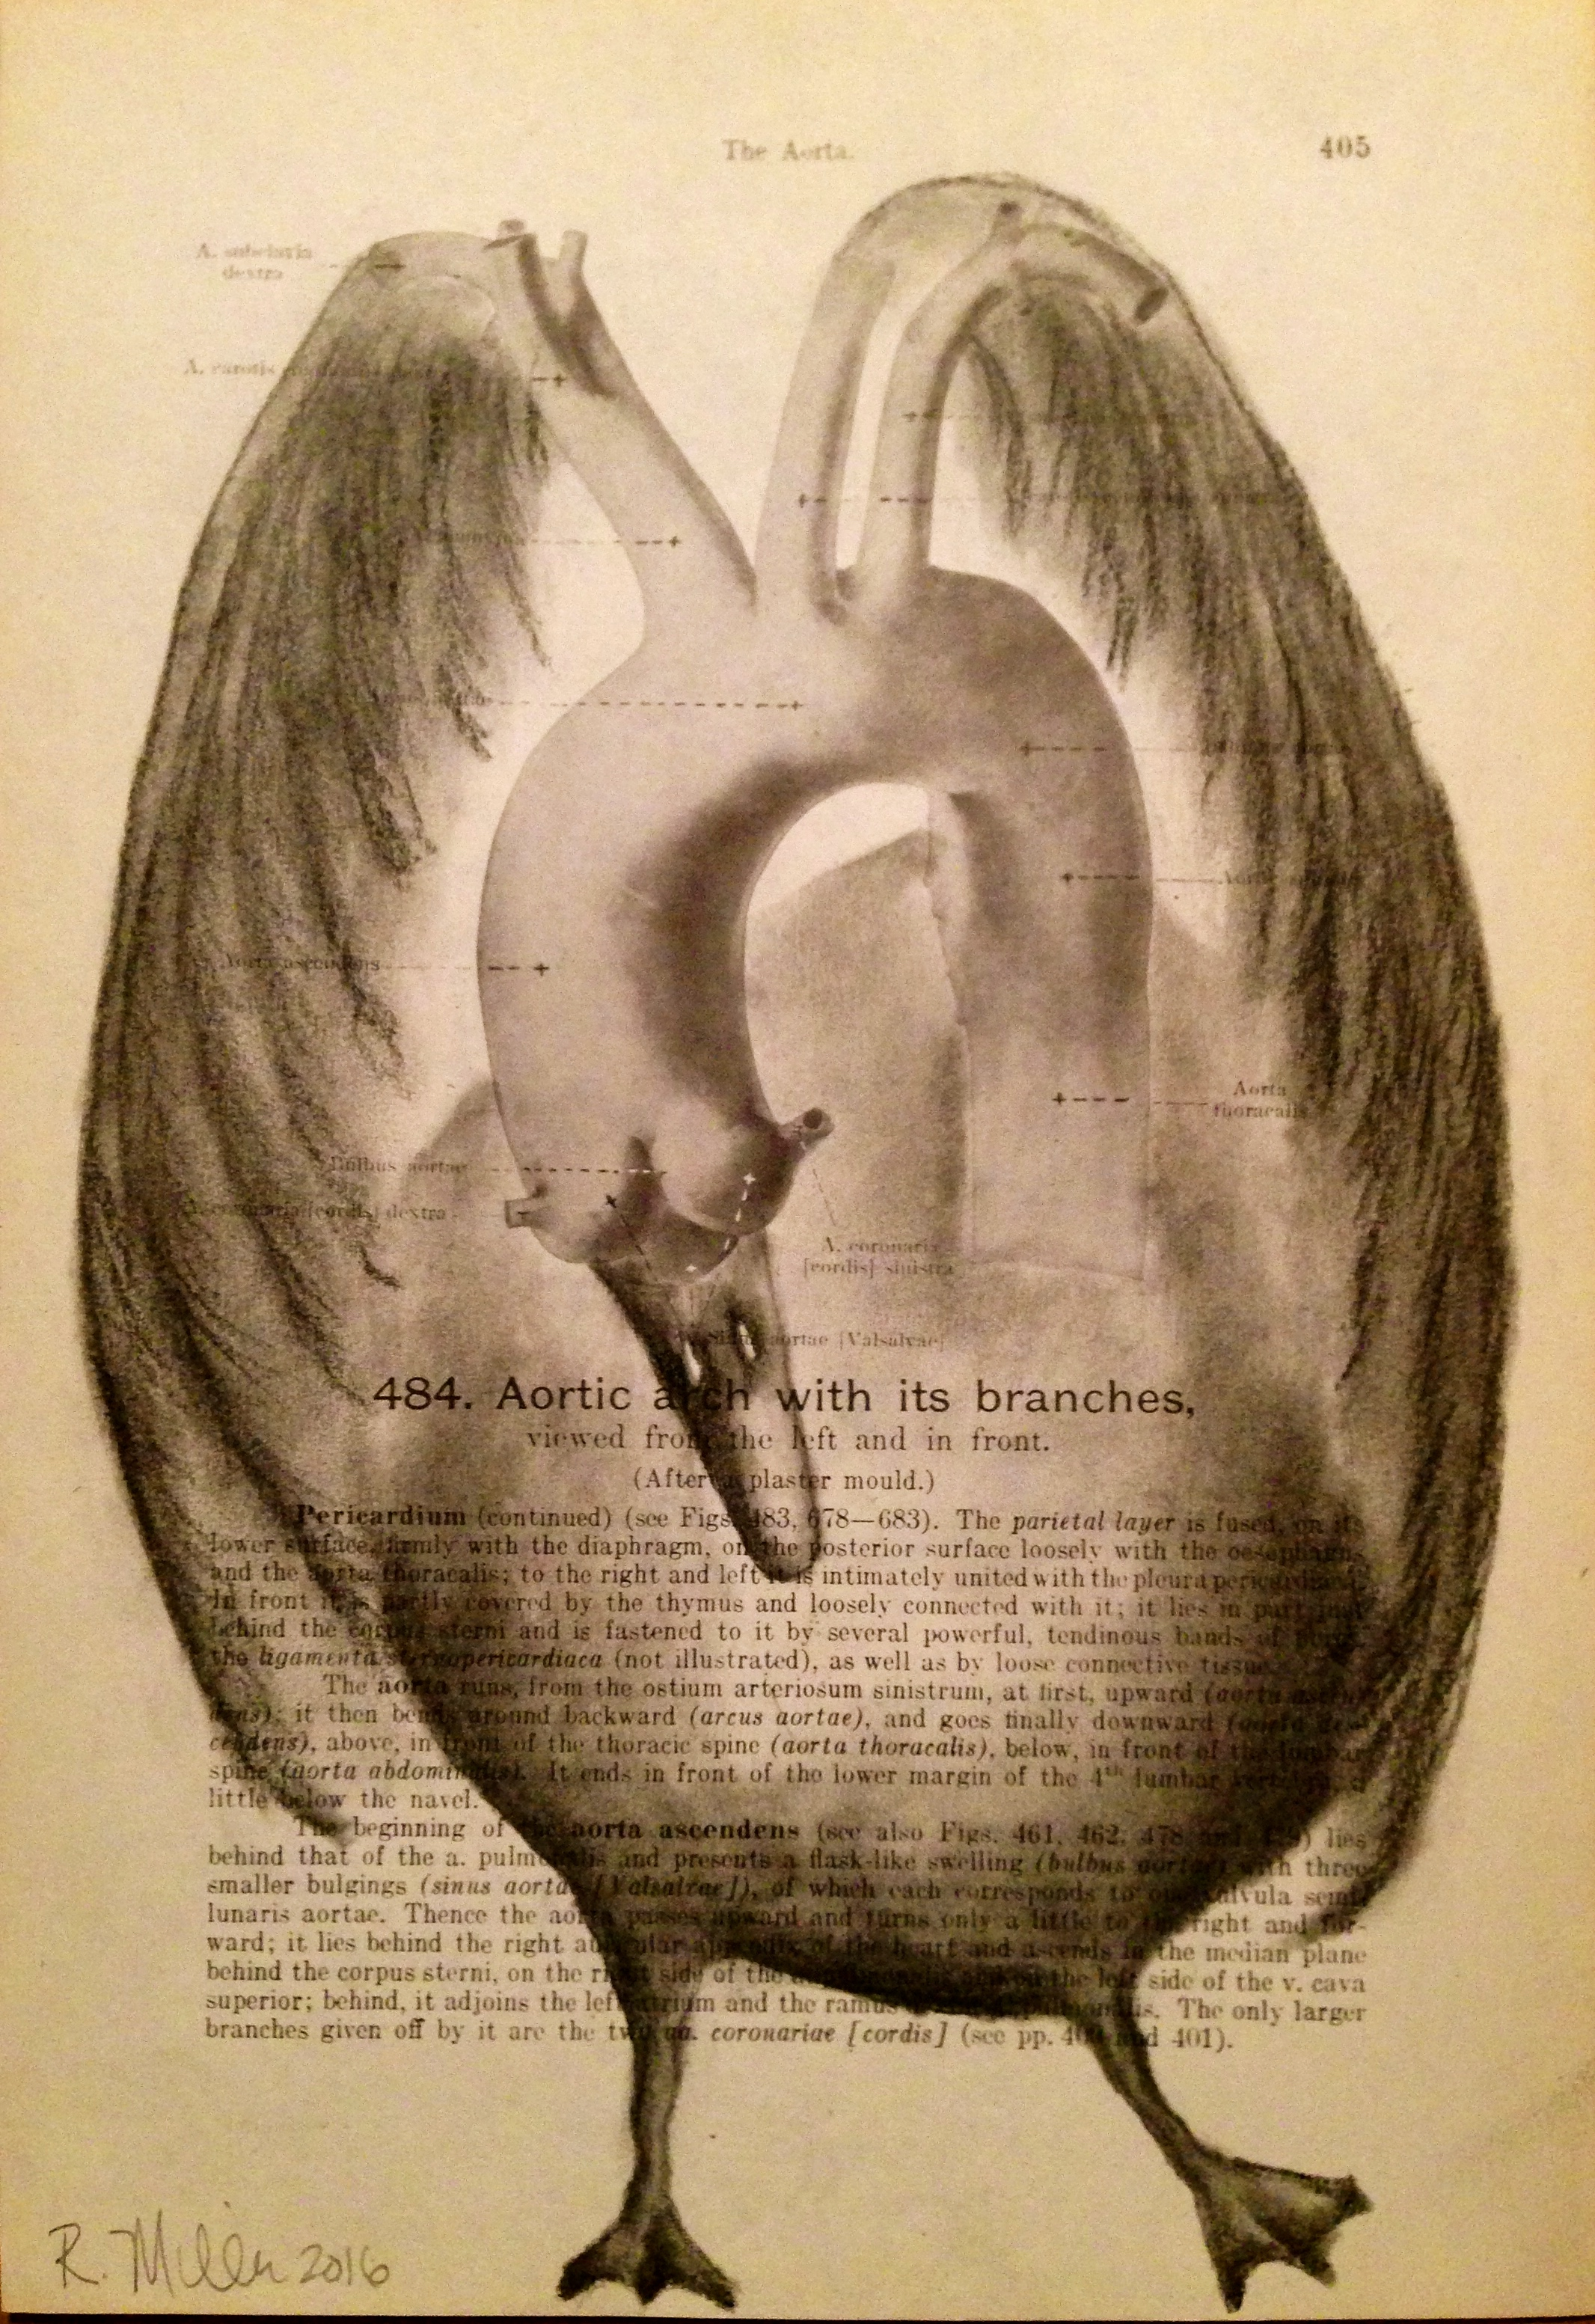 Aortic Bird, 2016   Charcoal on antique medical paper